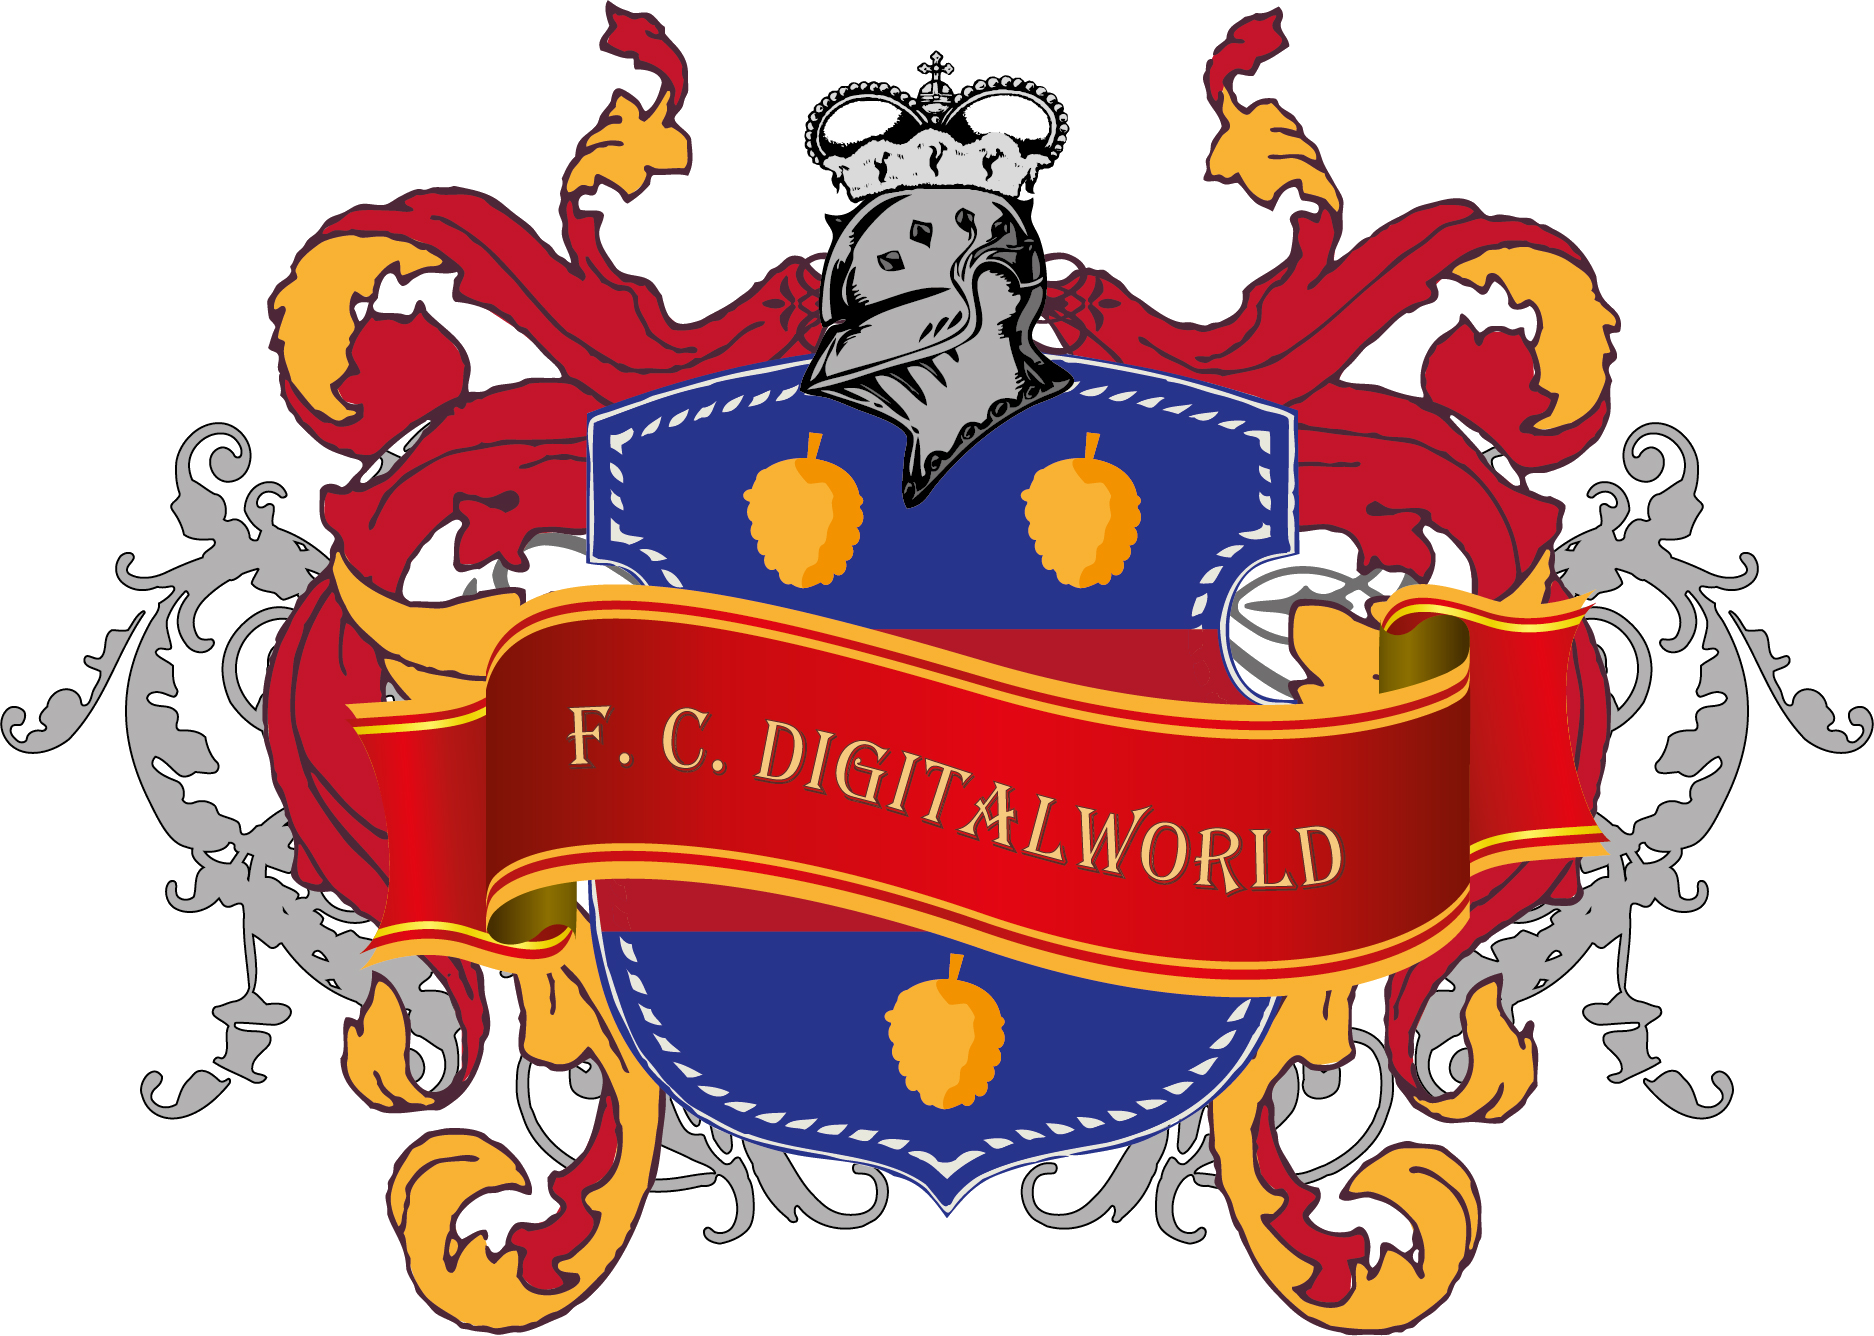 F.C. DigitalWorld